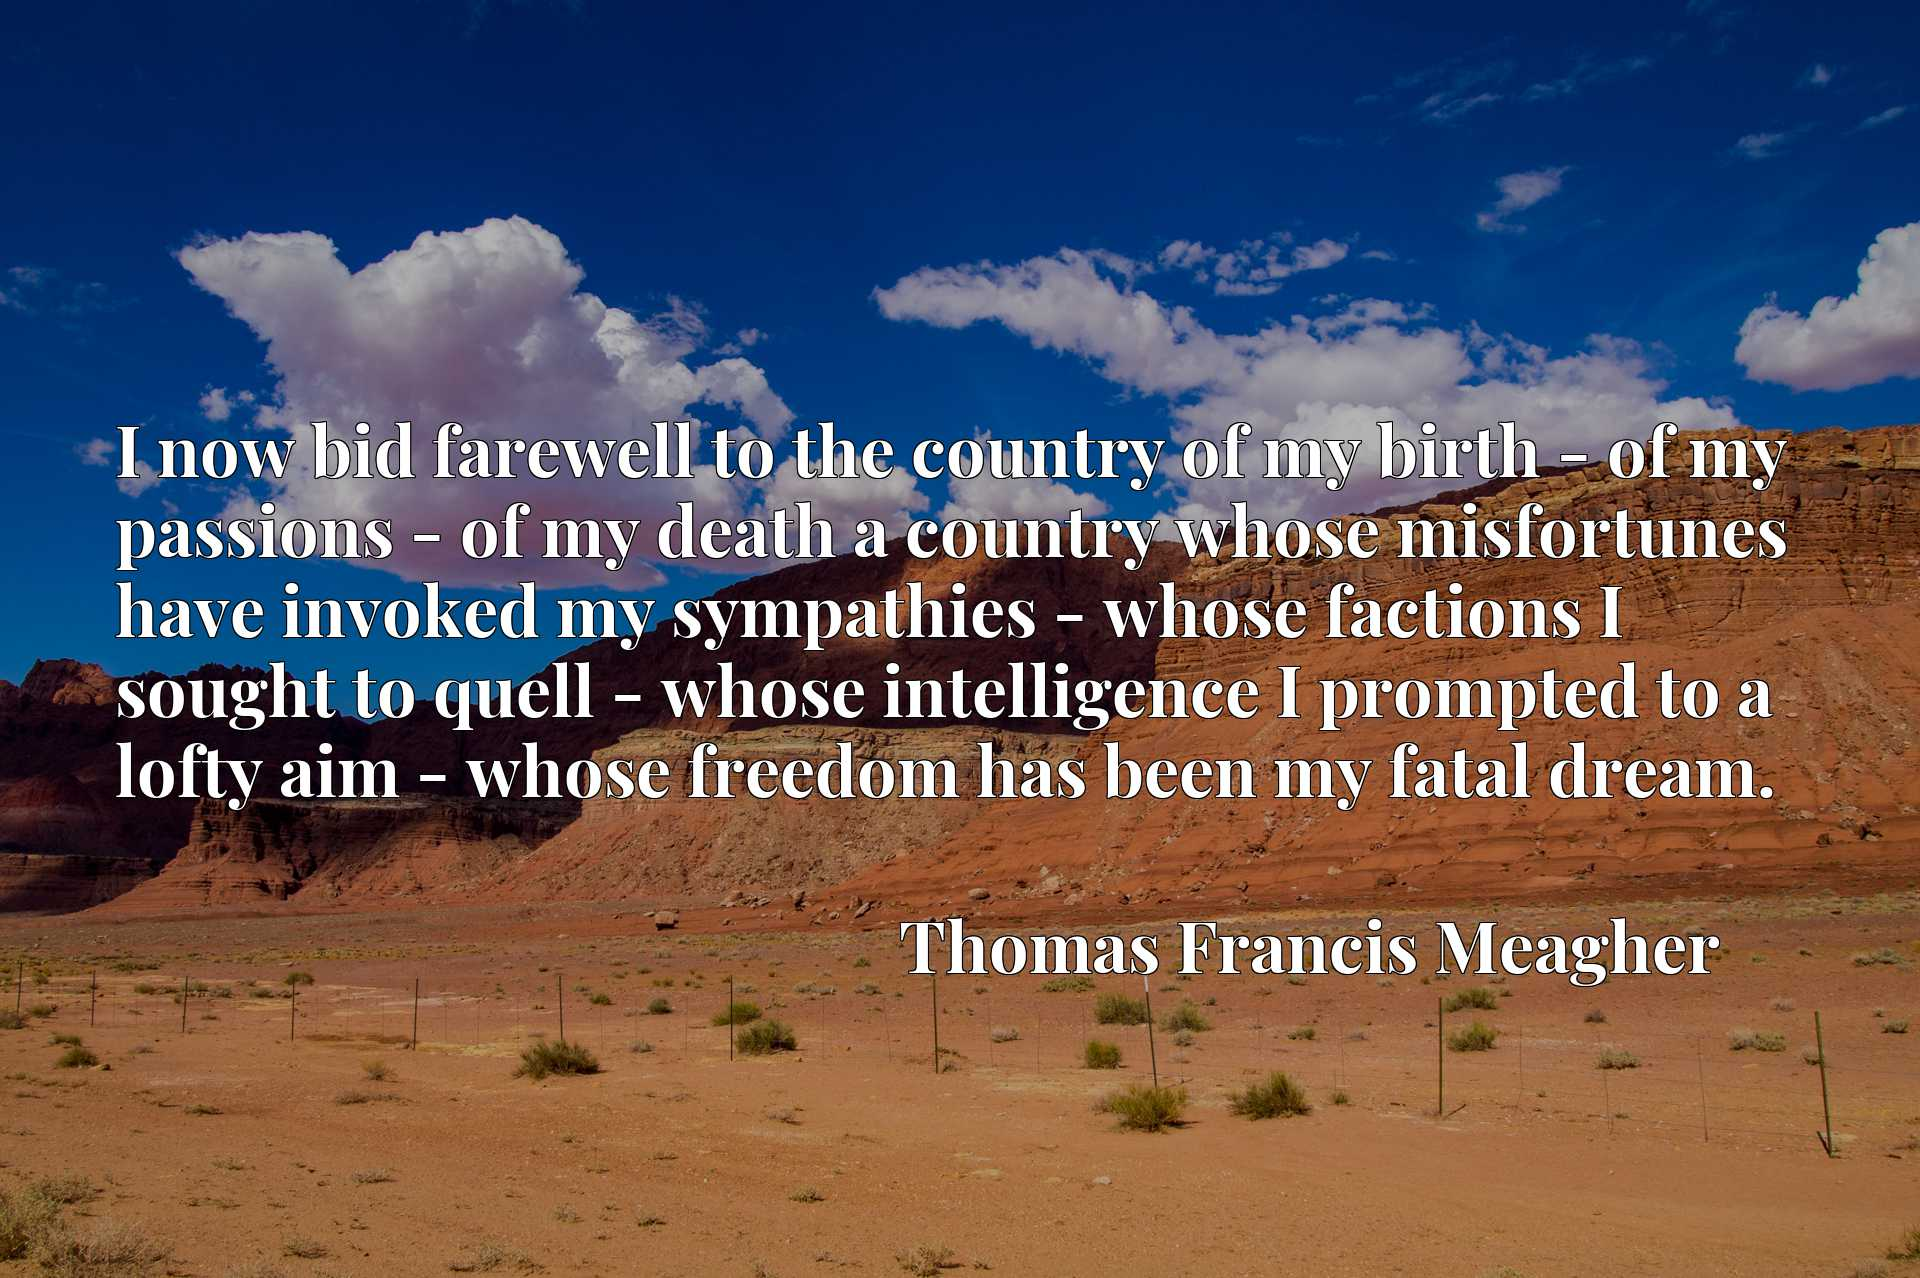 I now bid farewell to the country of my birth - of my passions - of my death a country whose misfortunes have invoked my sympathies - whose factions I sought to quell - whose intelligence I prompted to a lofty aim - whose freedom has been my fatal dream.